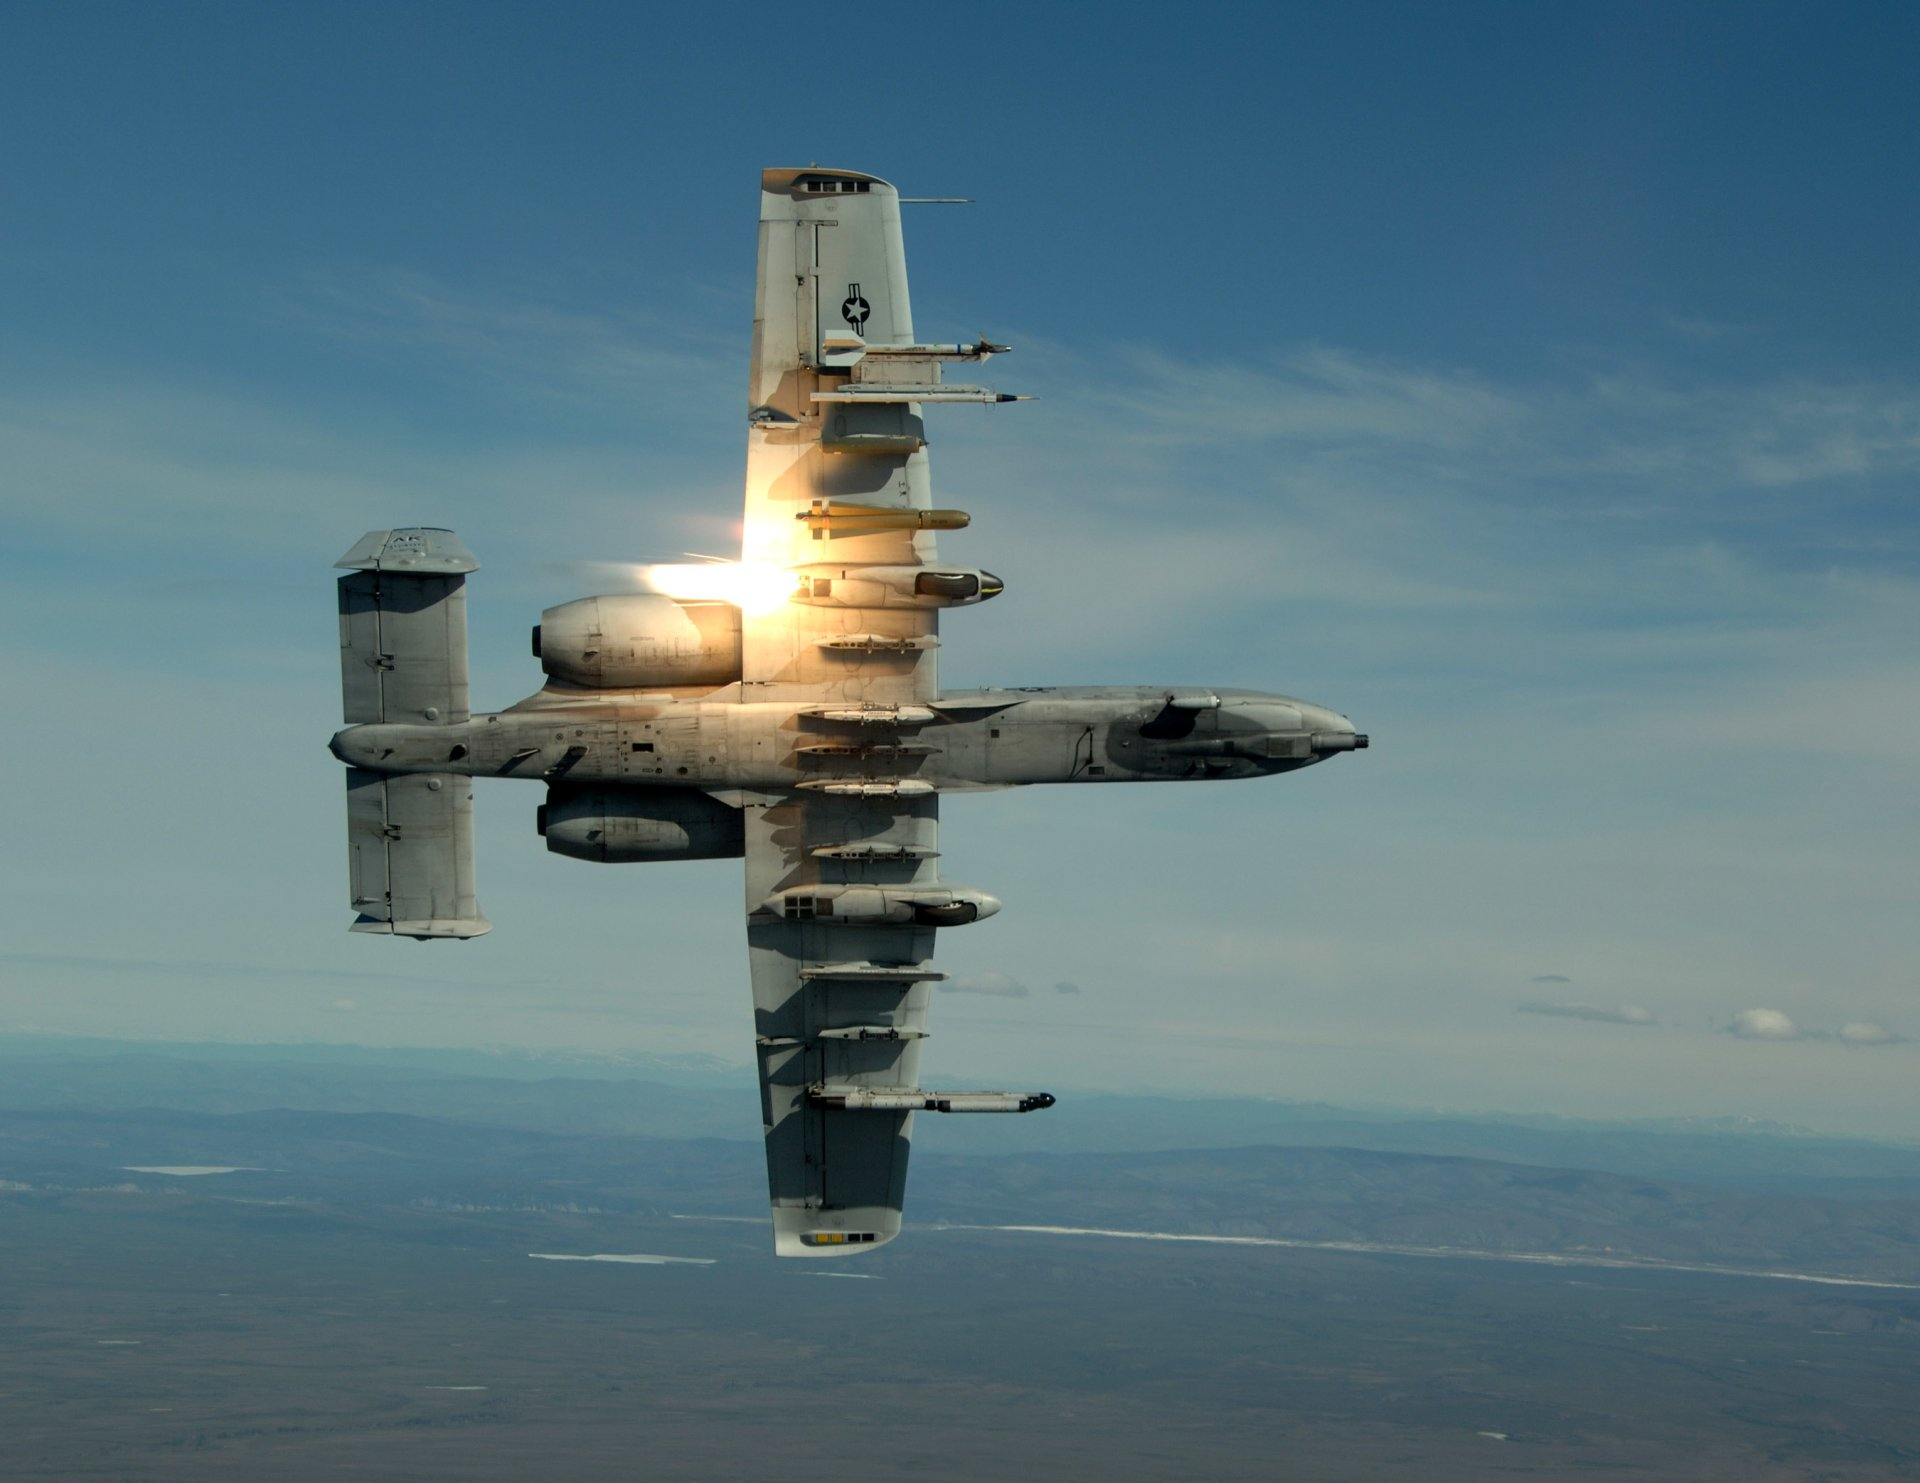 Military - Fairchild Republic A-10 Thunderbolt II  Military Vehicle Airplane Aircraft Wallpaper